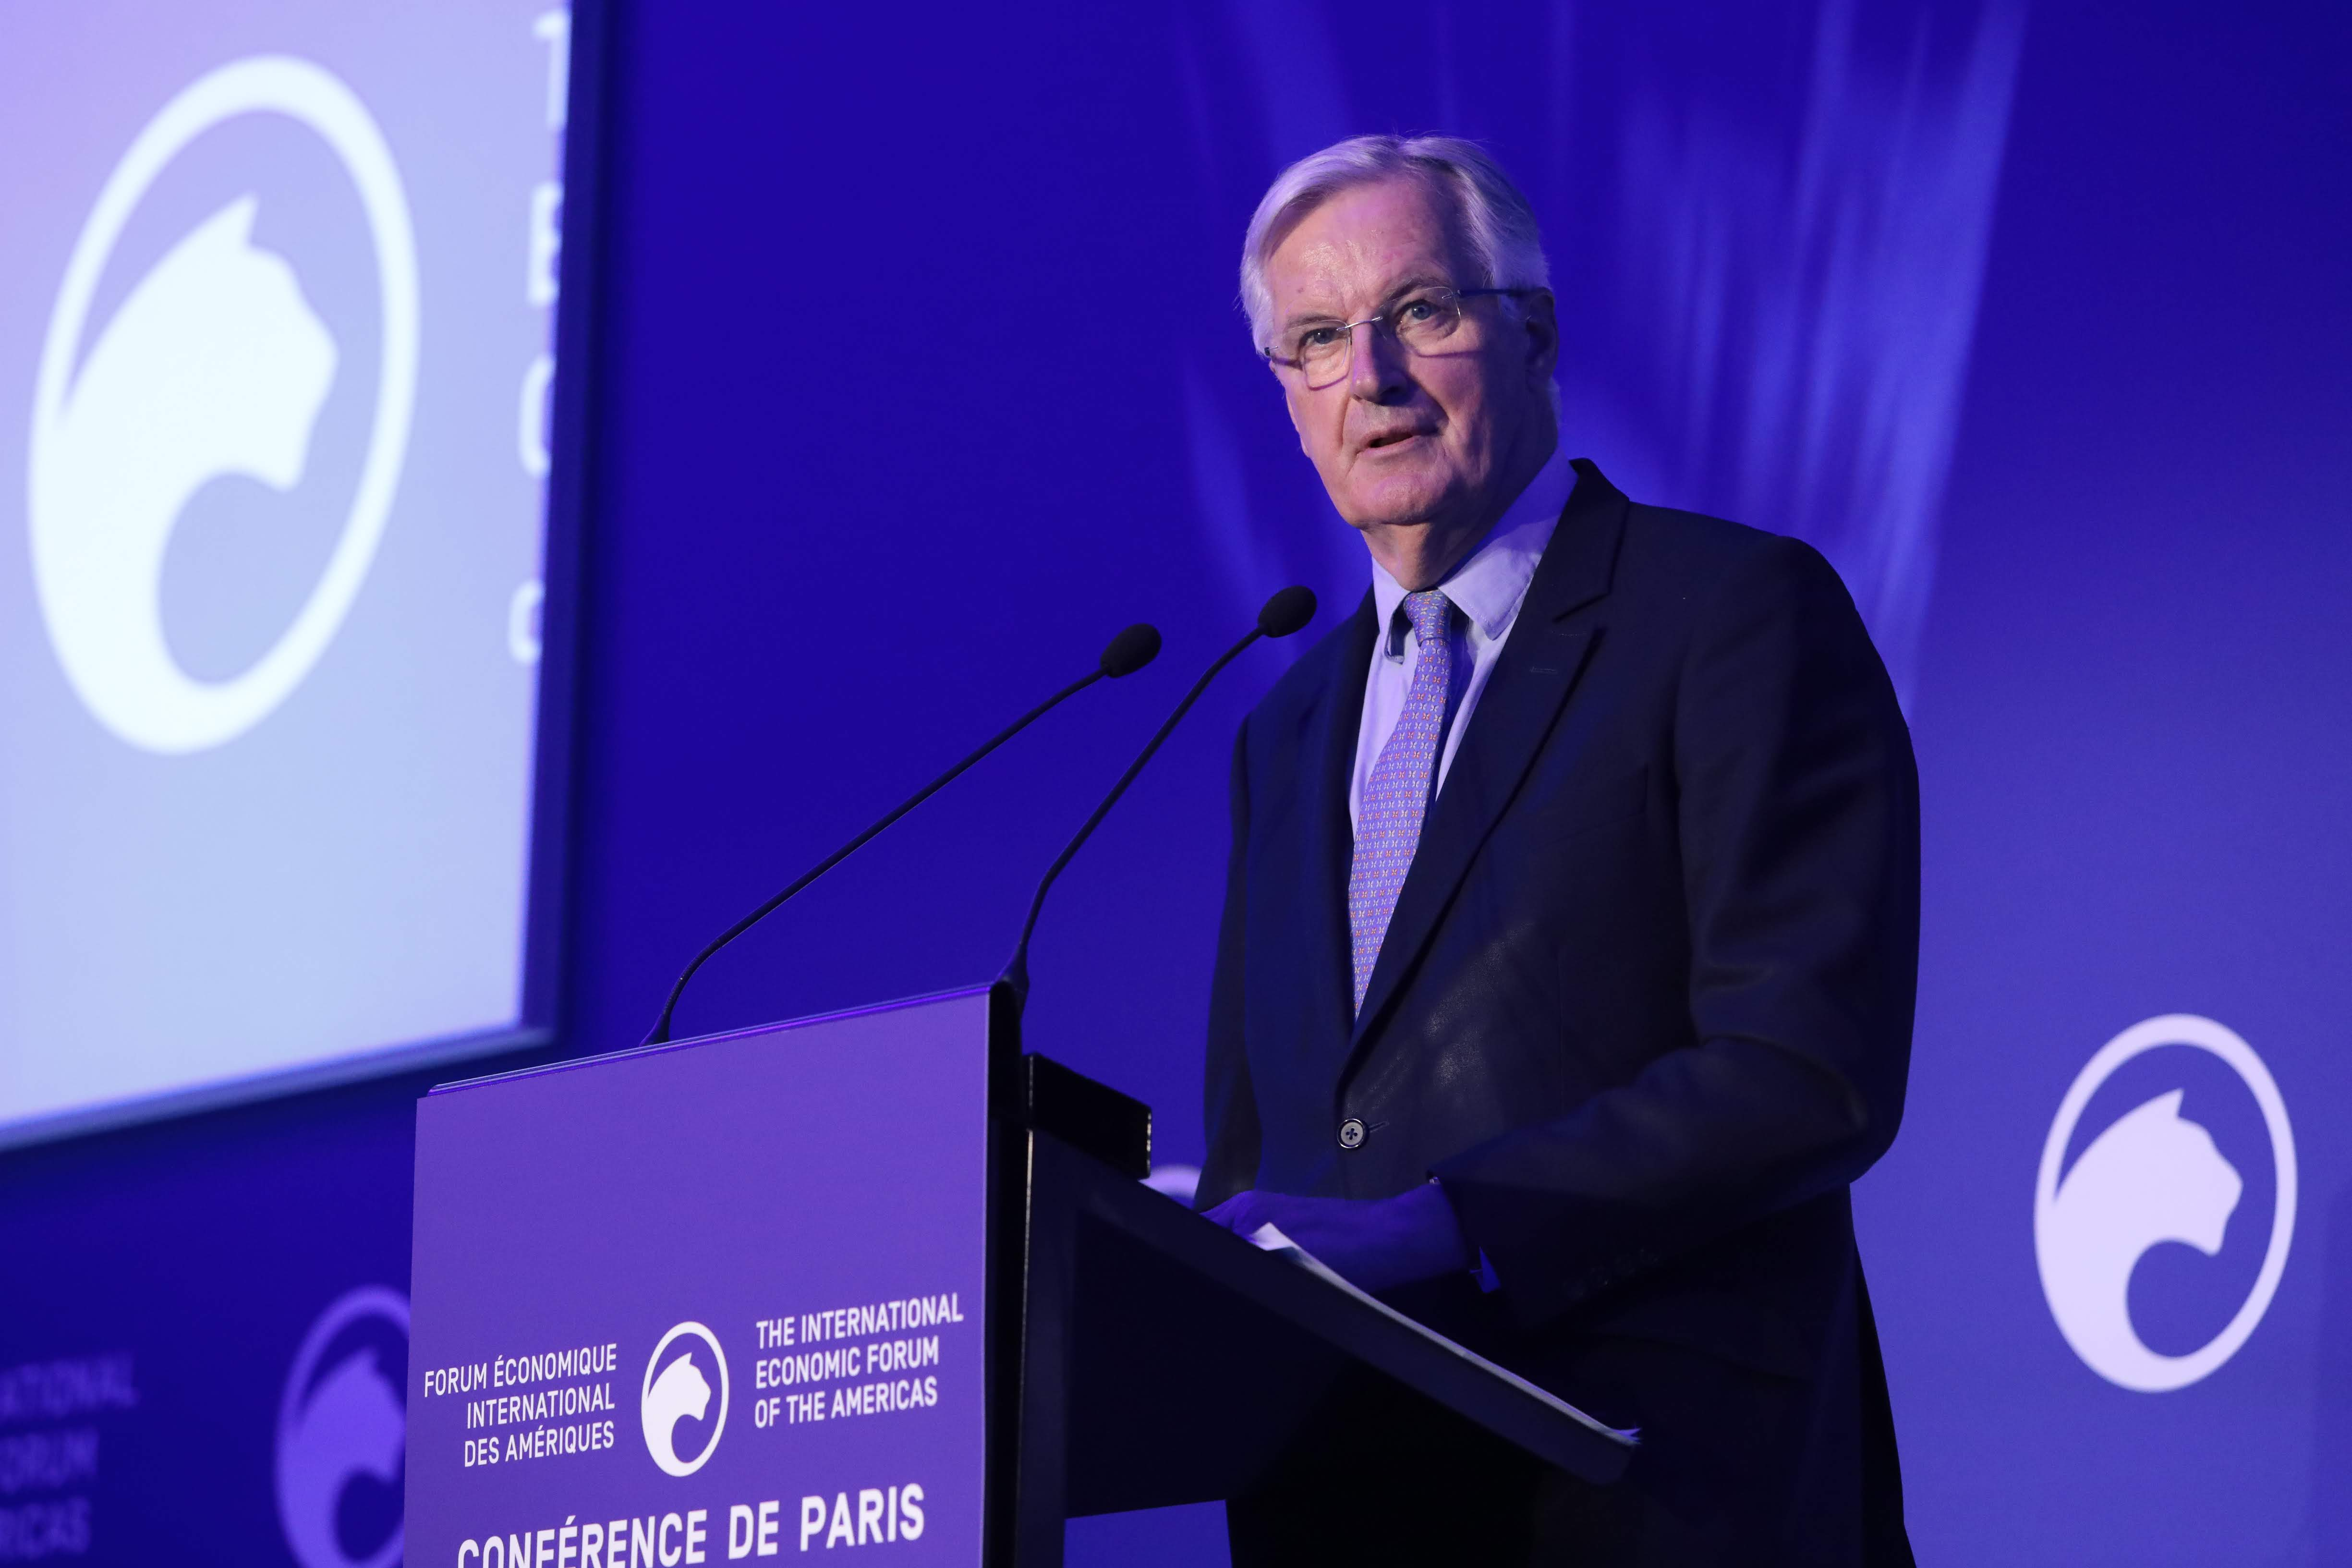 Michel Barnier, Chief Negotiator for Brexit, European Commission - Conference of Paris 2019